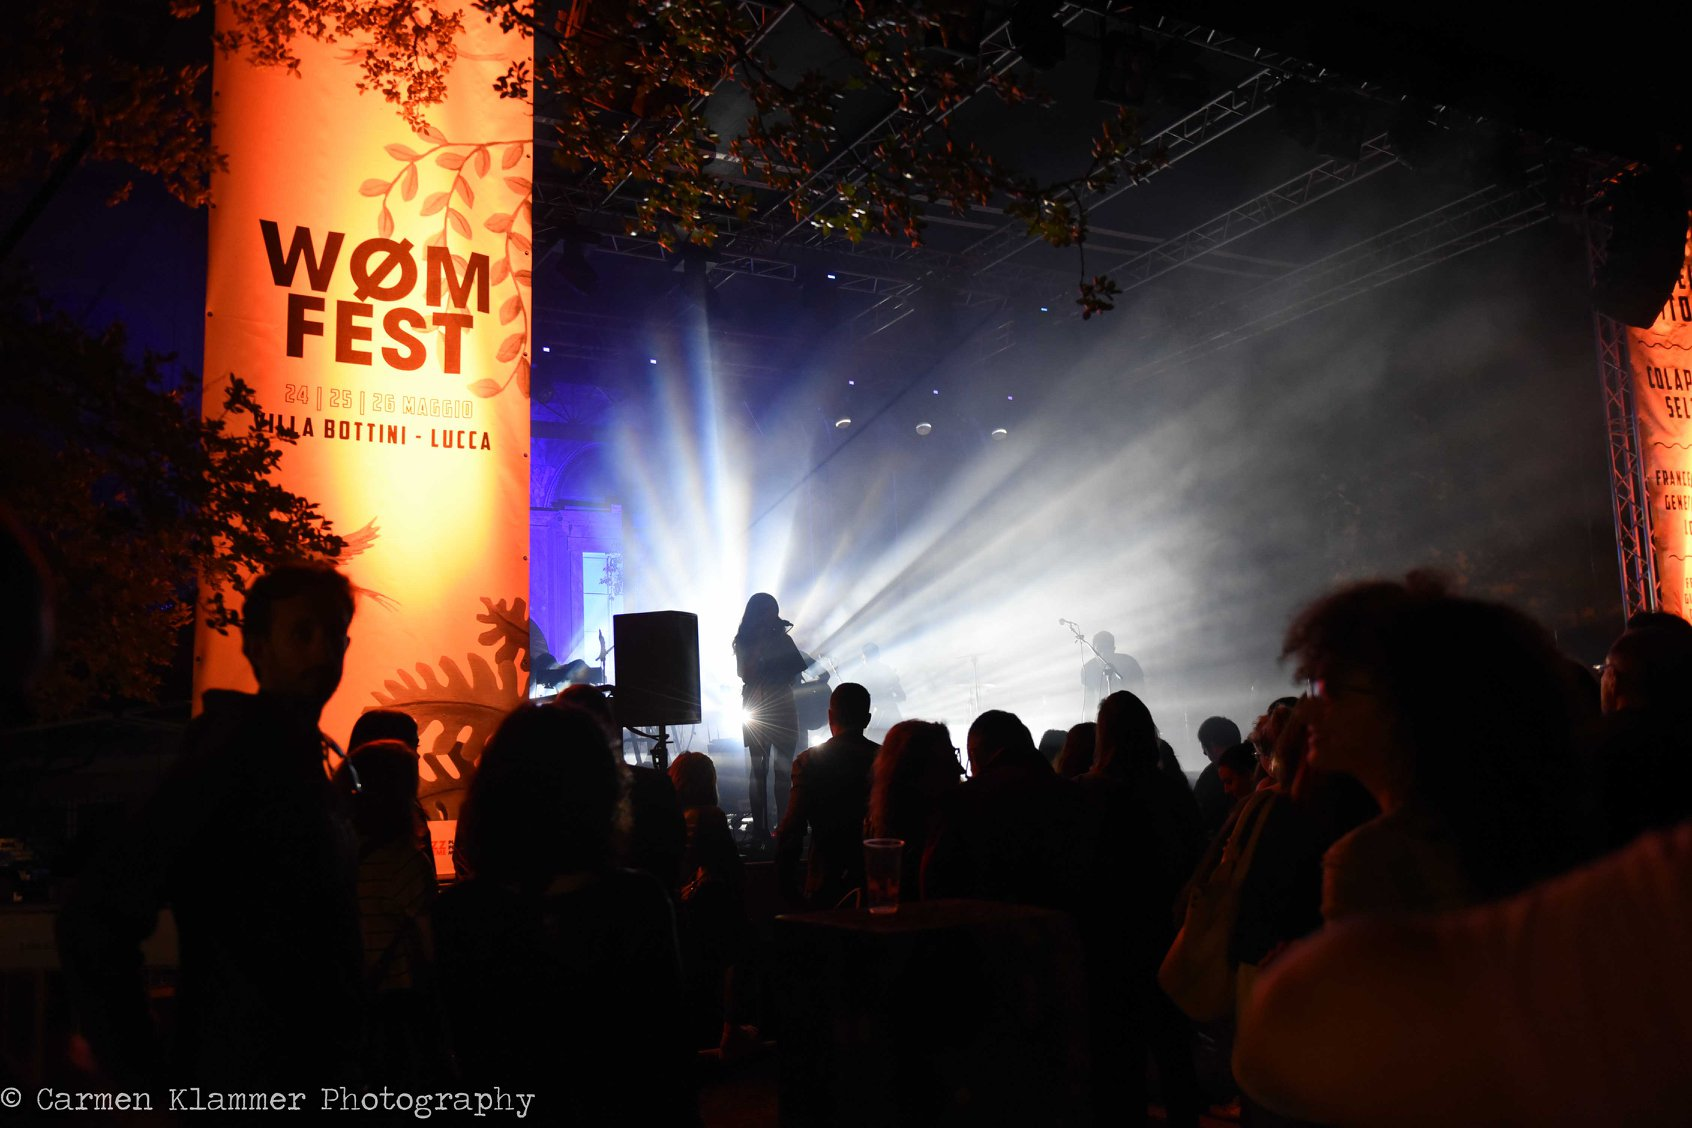 WØM FESTIVAL AT VILLA BOTTINI